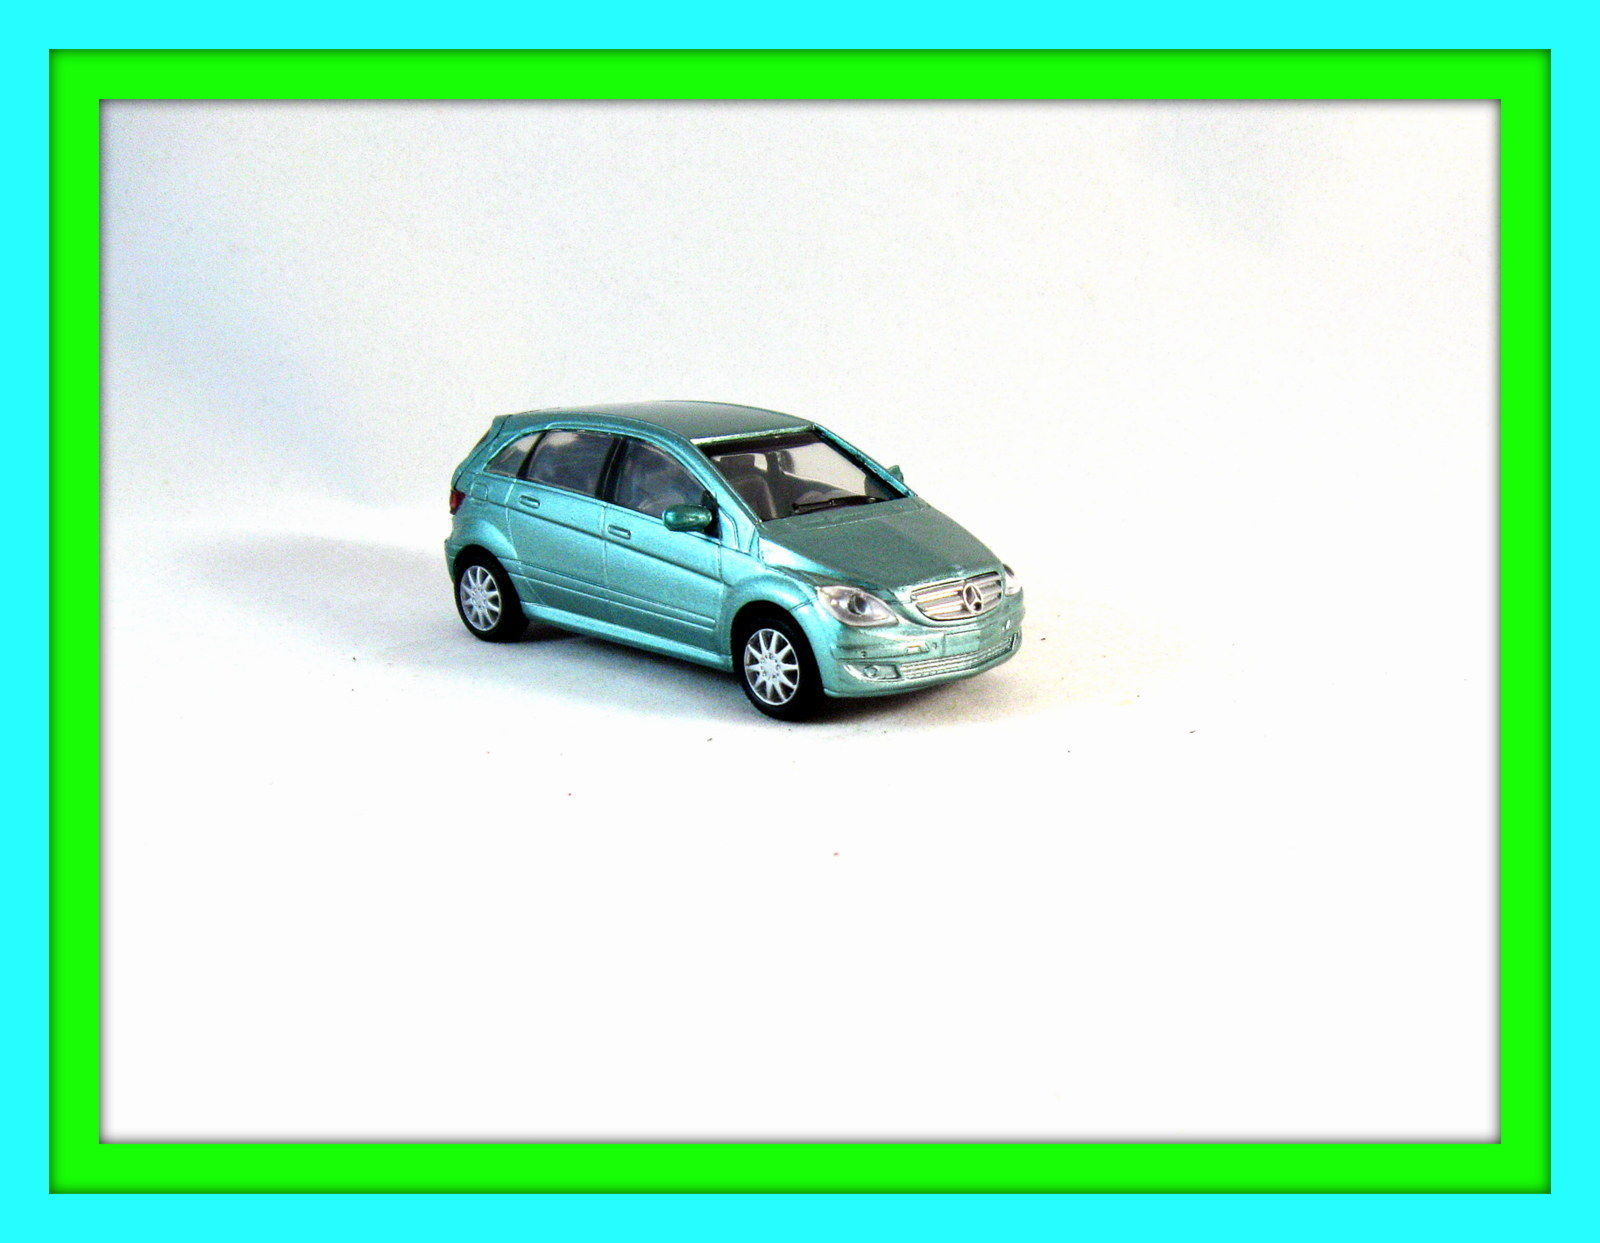 Mercedes benz b class newray 1 43 diecast car model car for Mercedes benz toy car models